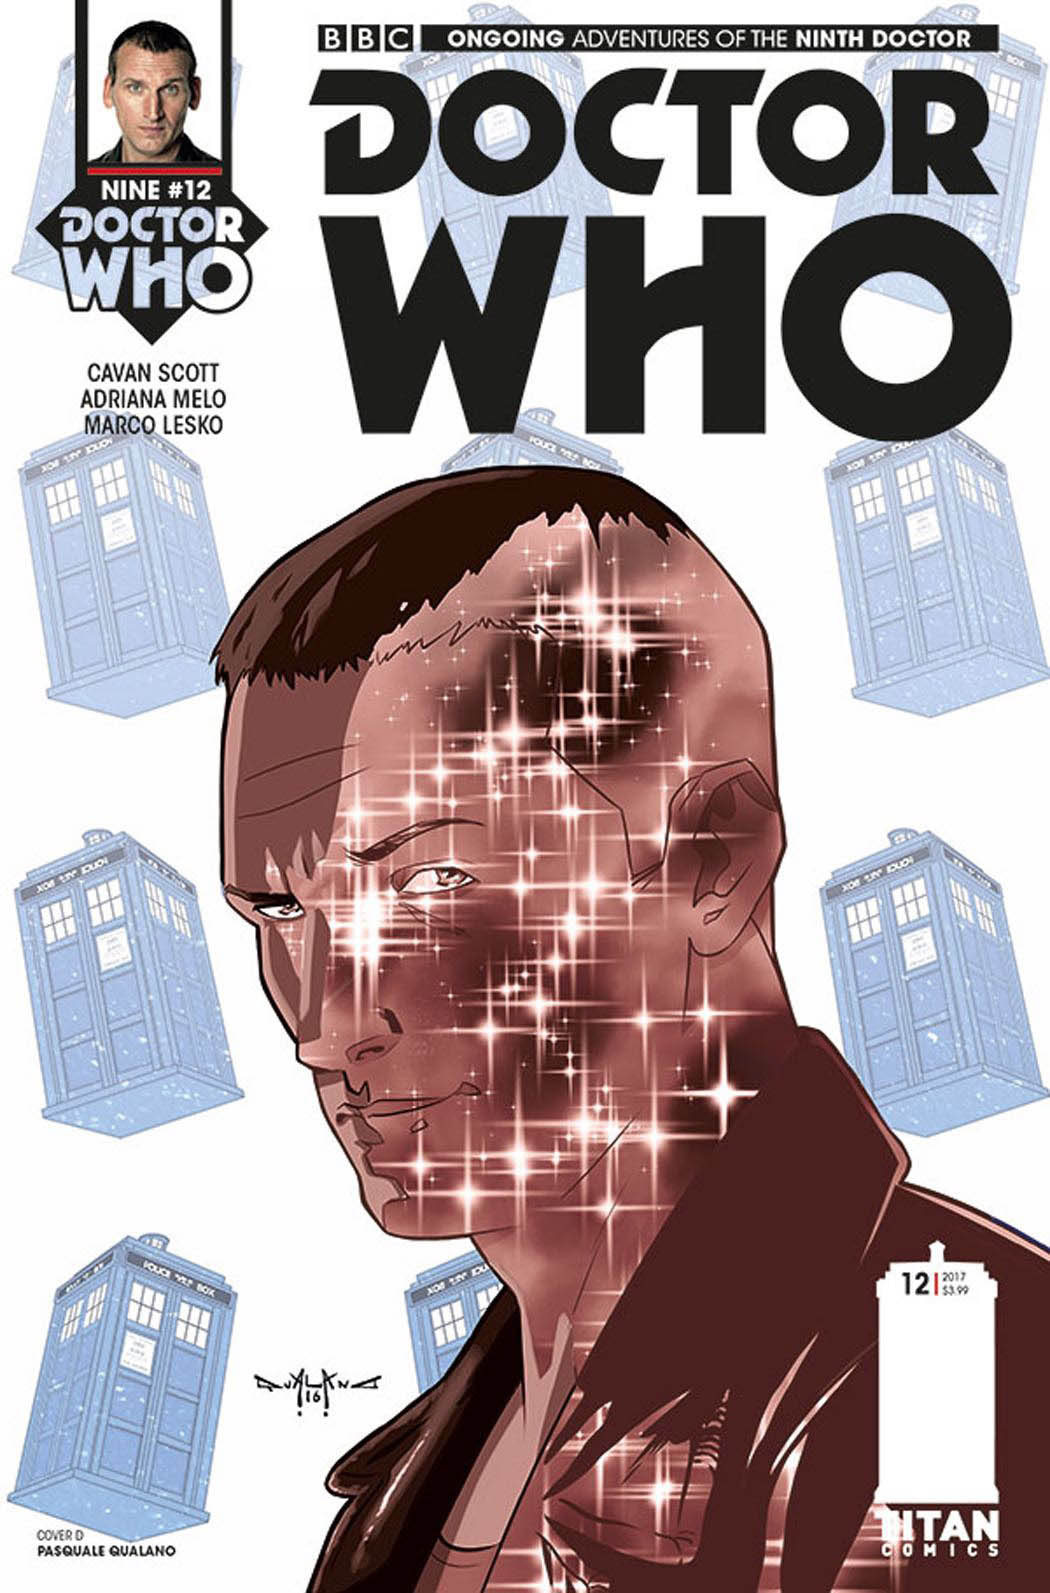 pasquale-qualano-portfolio-covers-Doctor-Who-9th-Doctor-Color---